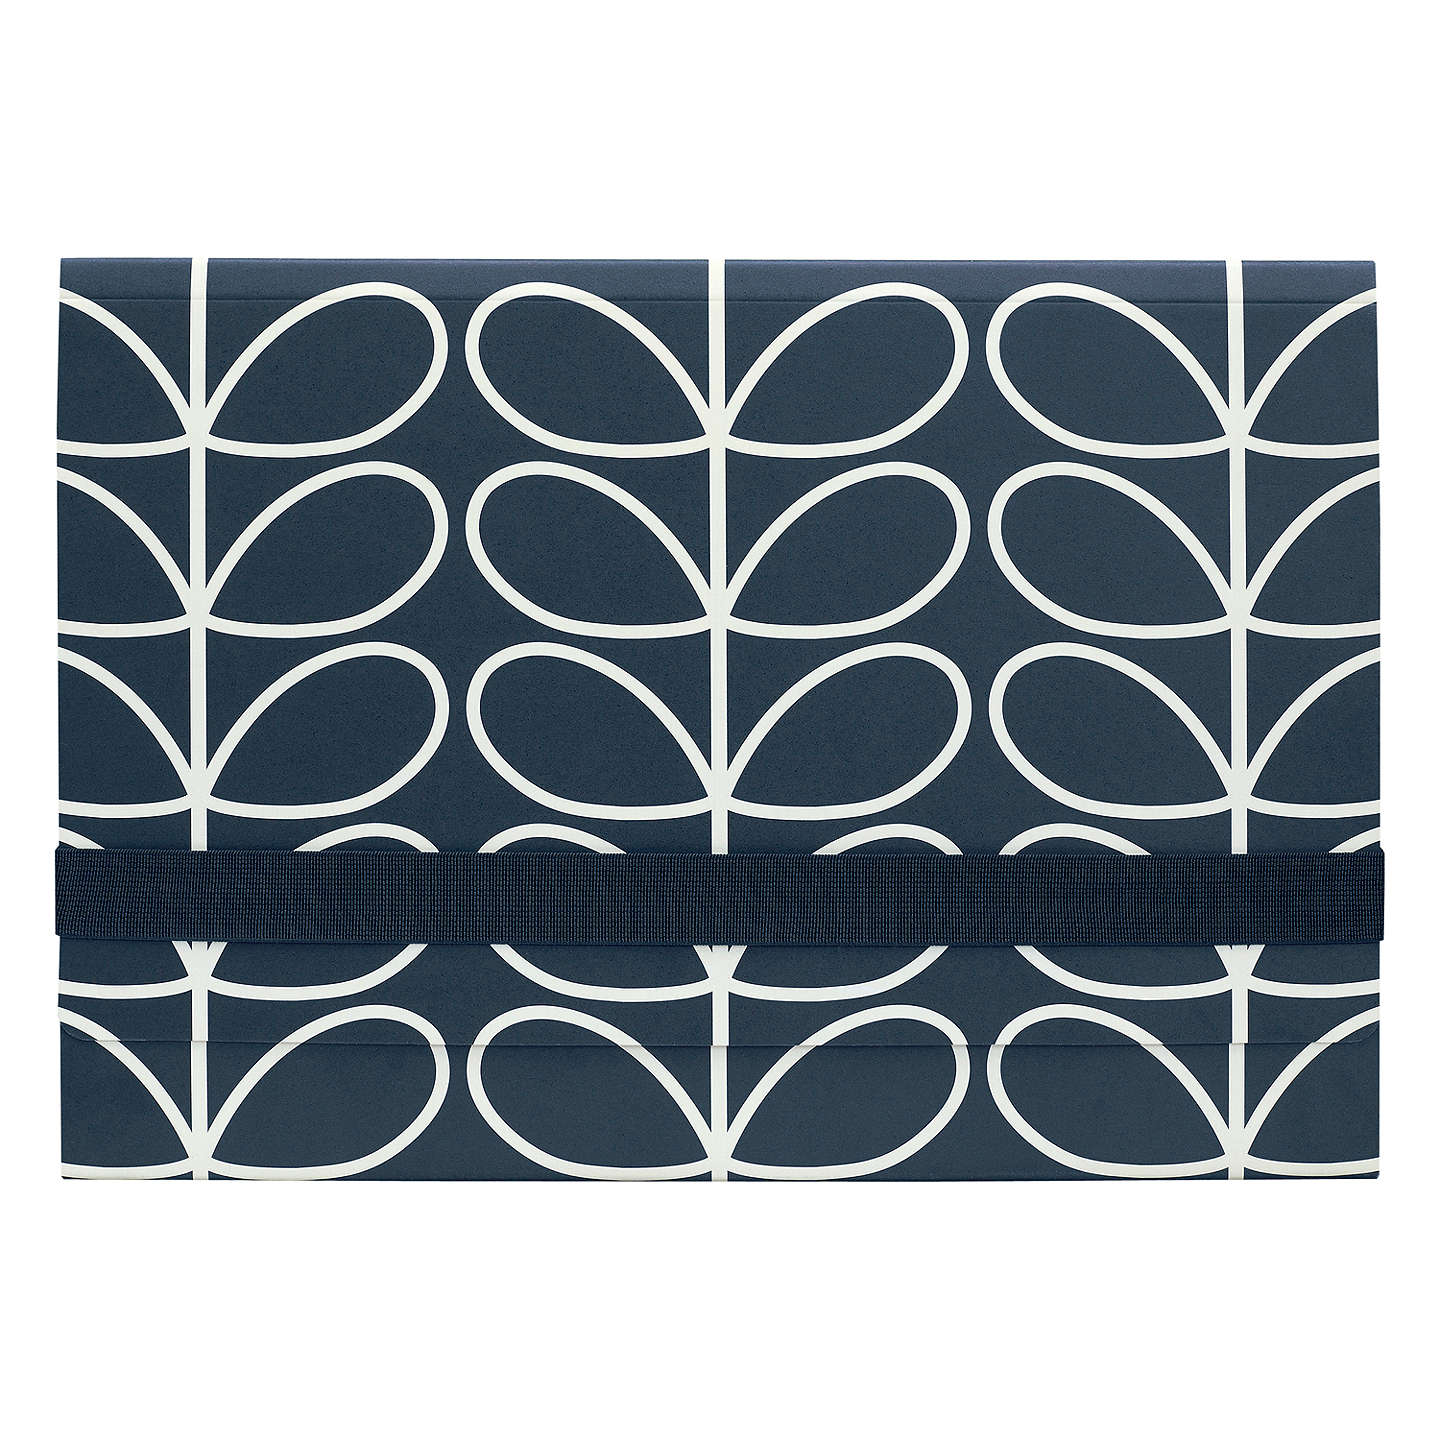 BuyOrla Kiely A4 Document Holder, Navy Online at johnlewis.com